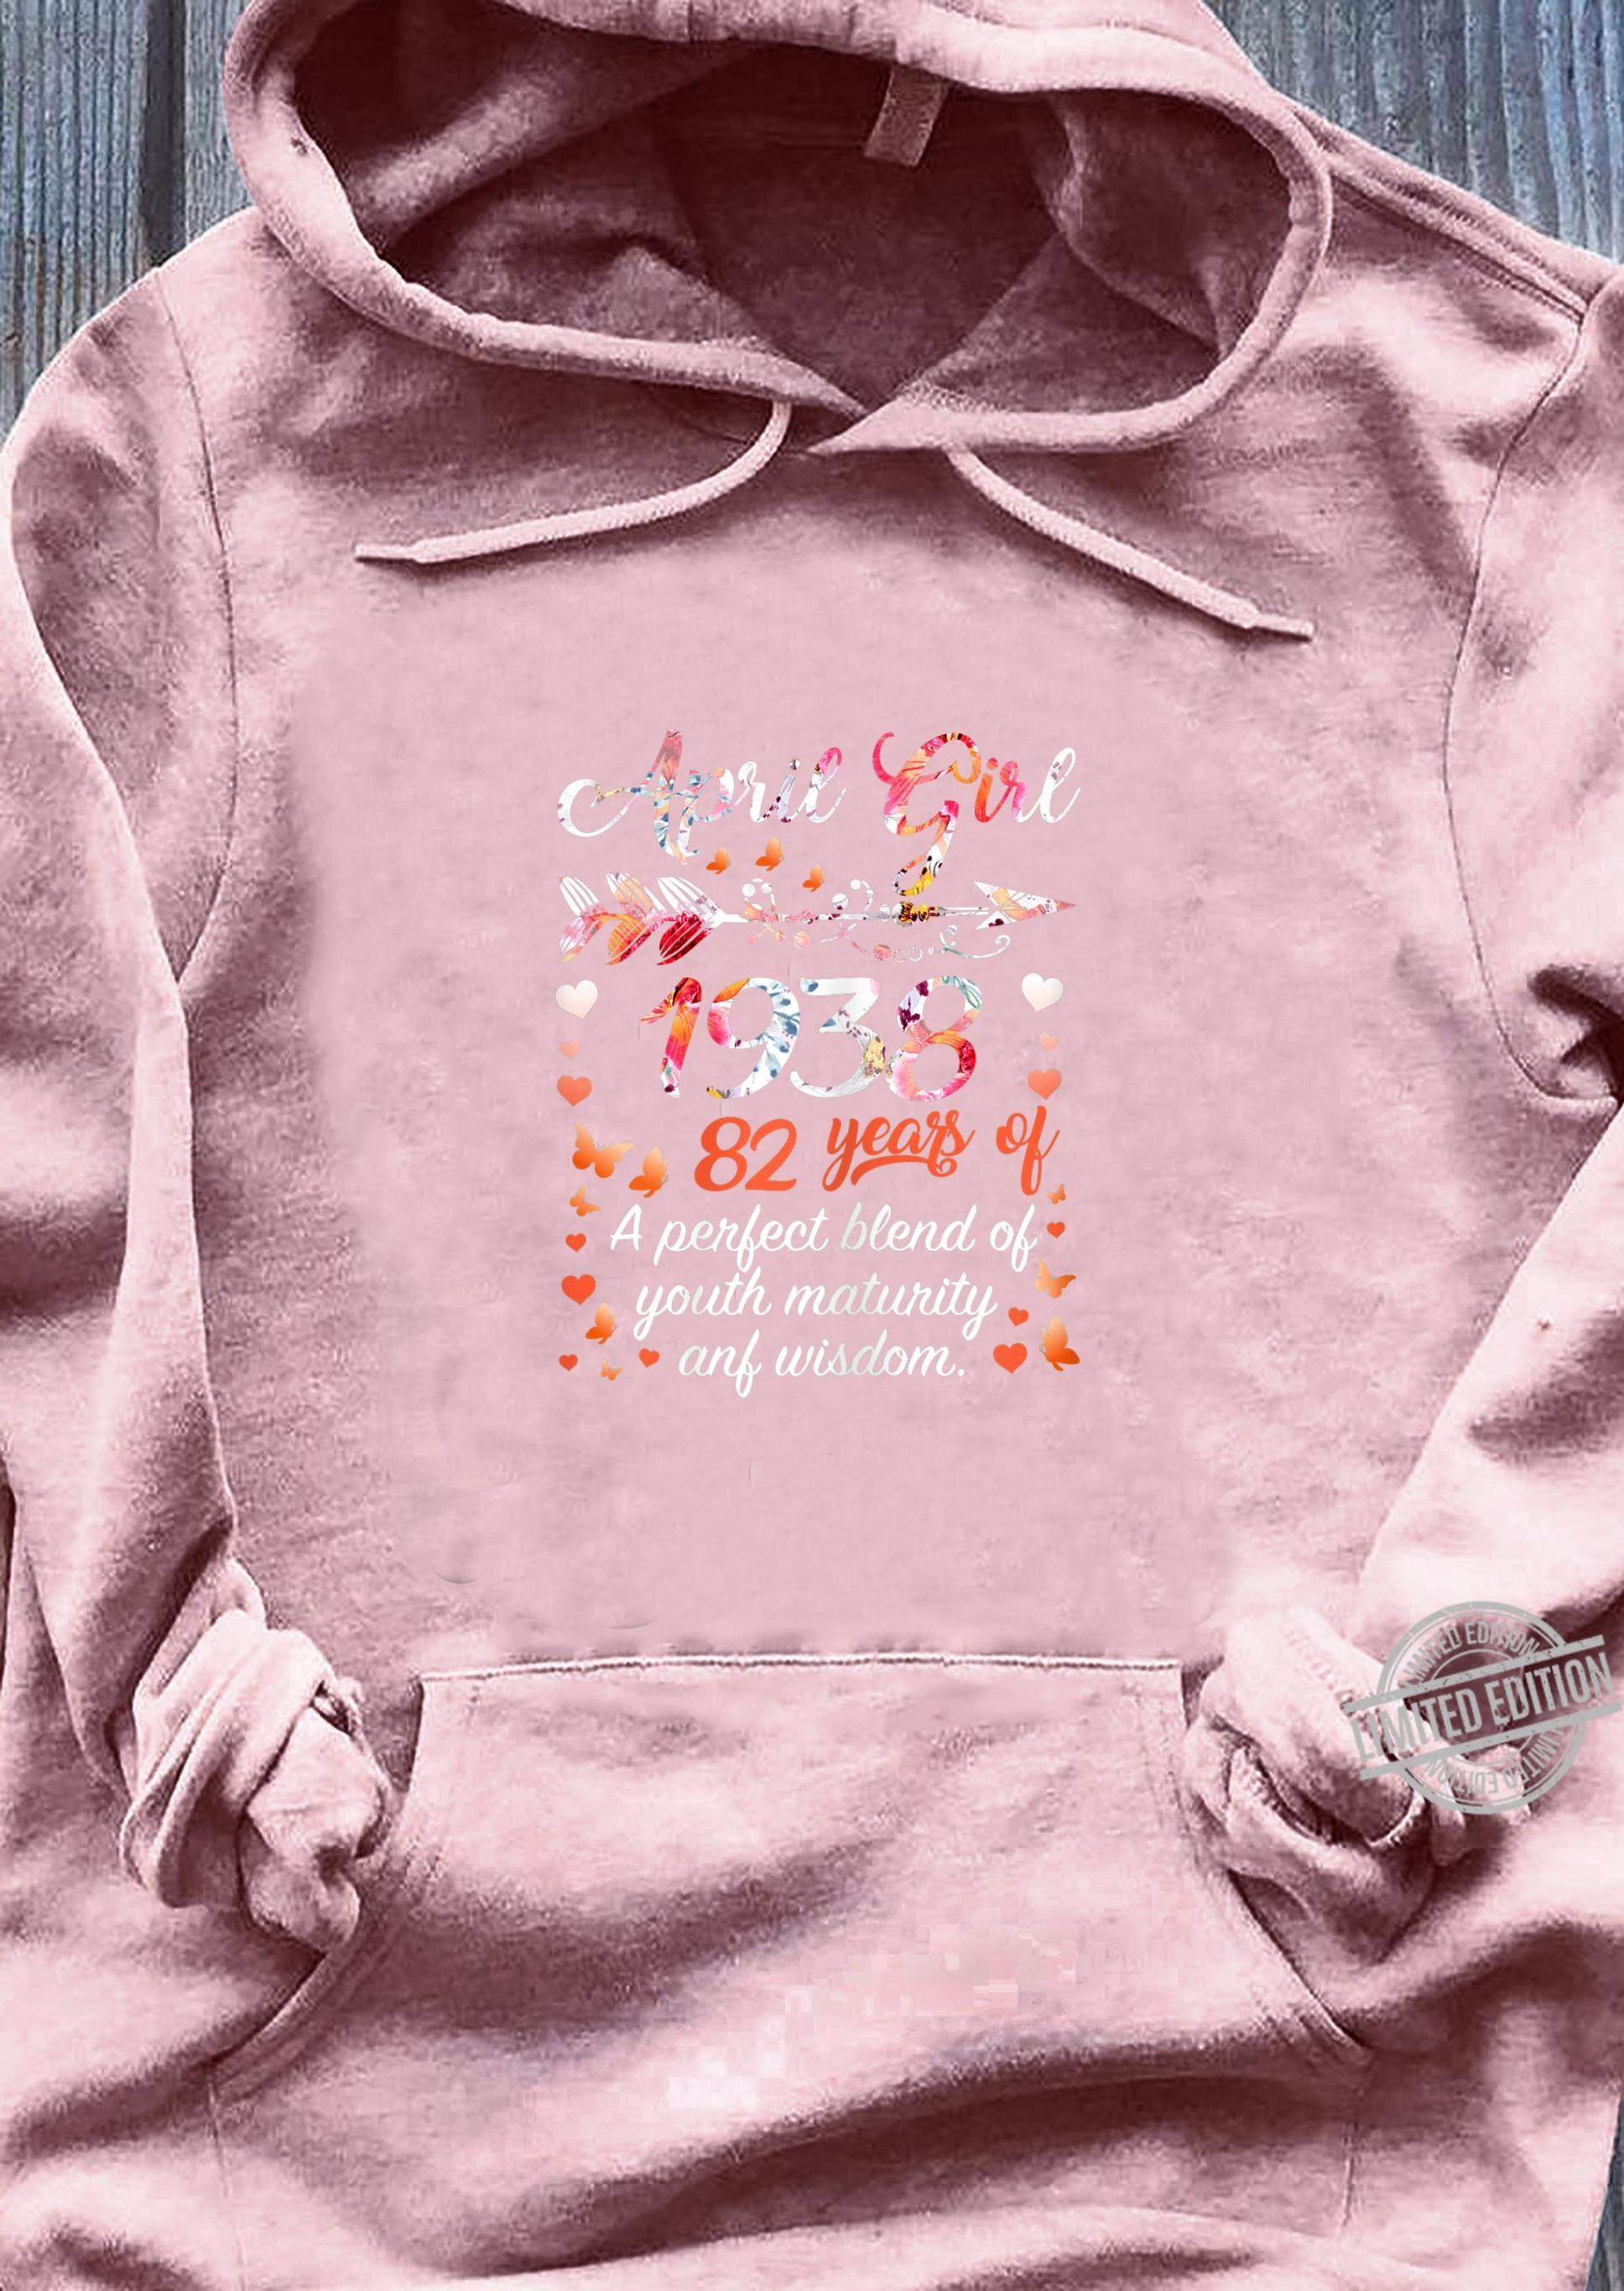 Womens April Girl 1938 82 Years Old 82nd Birthday Shirt sweater